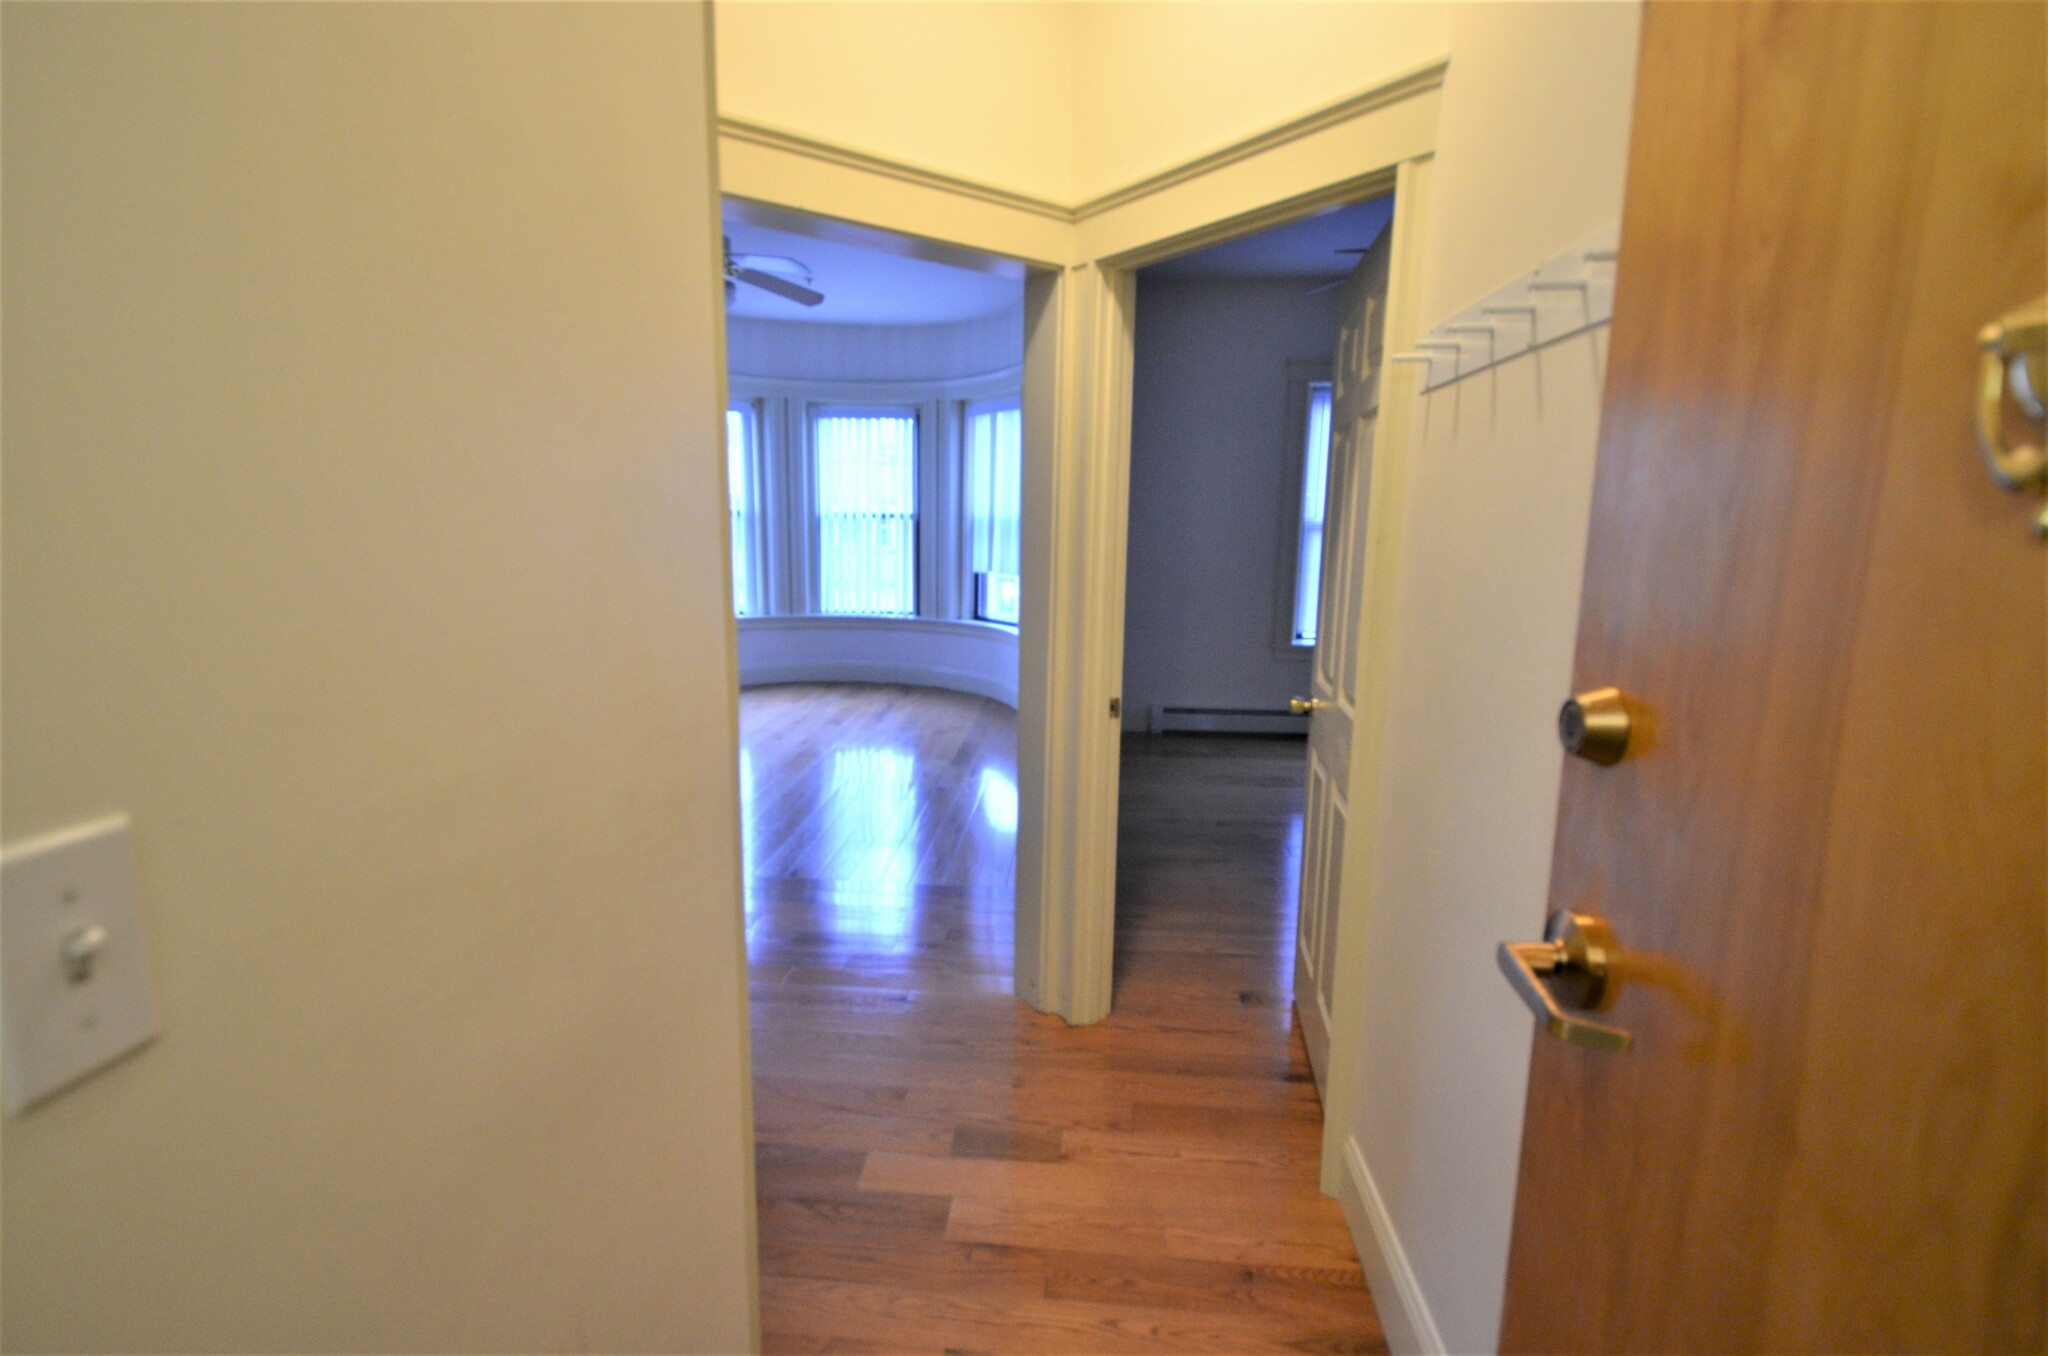 Avail 9/1 - HUGE Amazing 1 BR on Westland Ave *GREAT LOCATION*